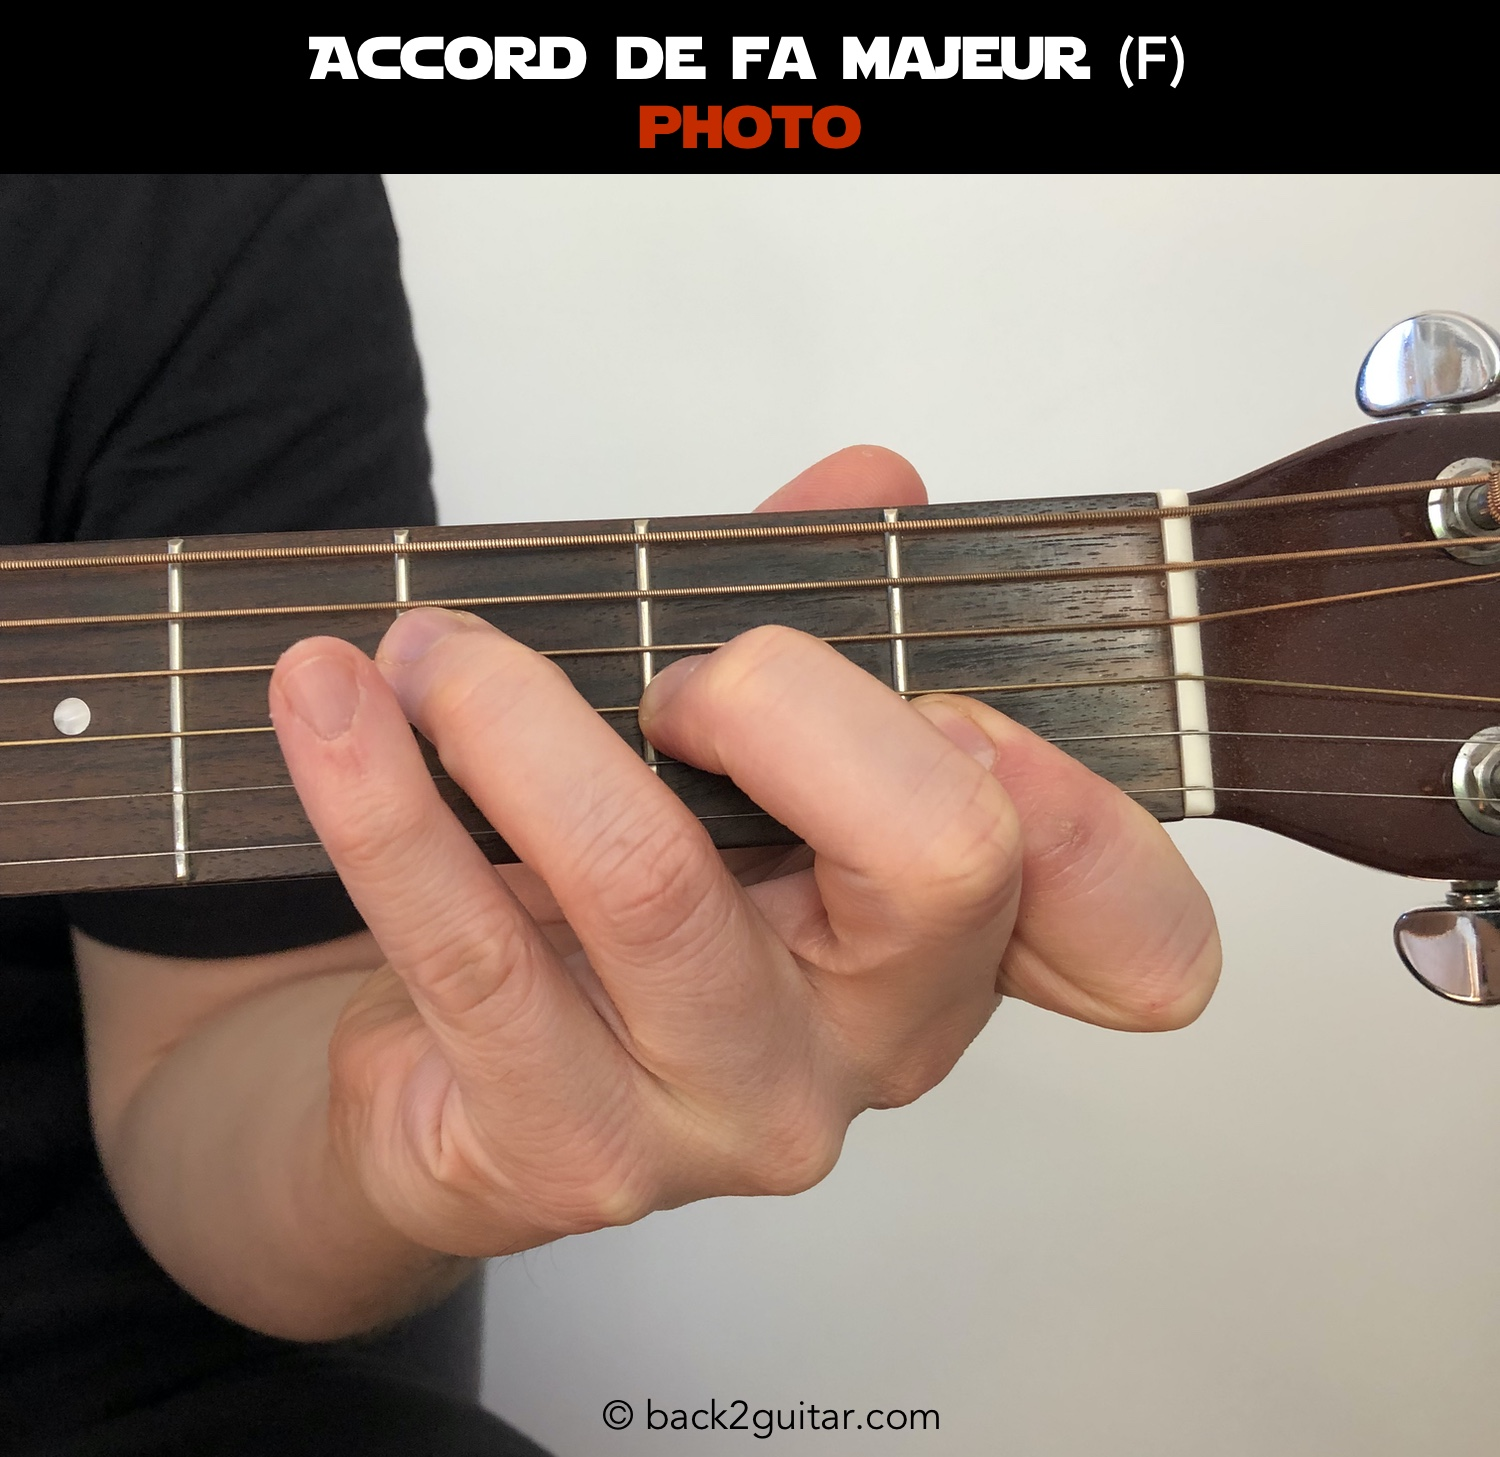 accord guitare fa majeur photo (F)